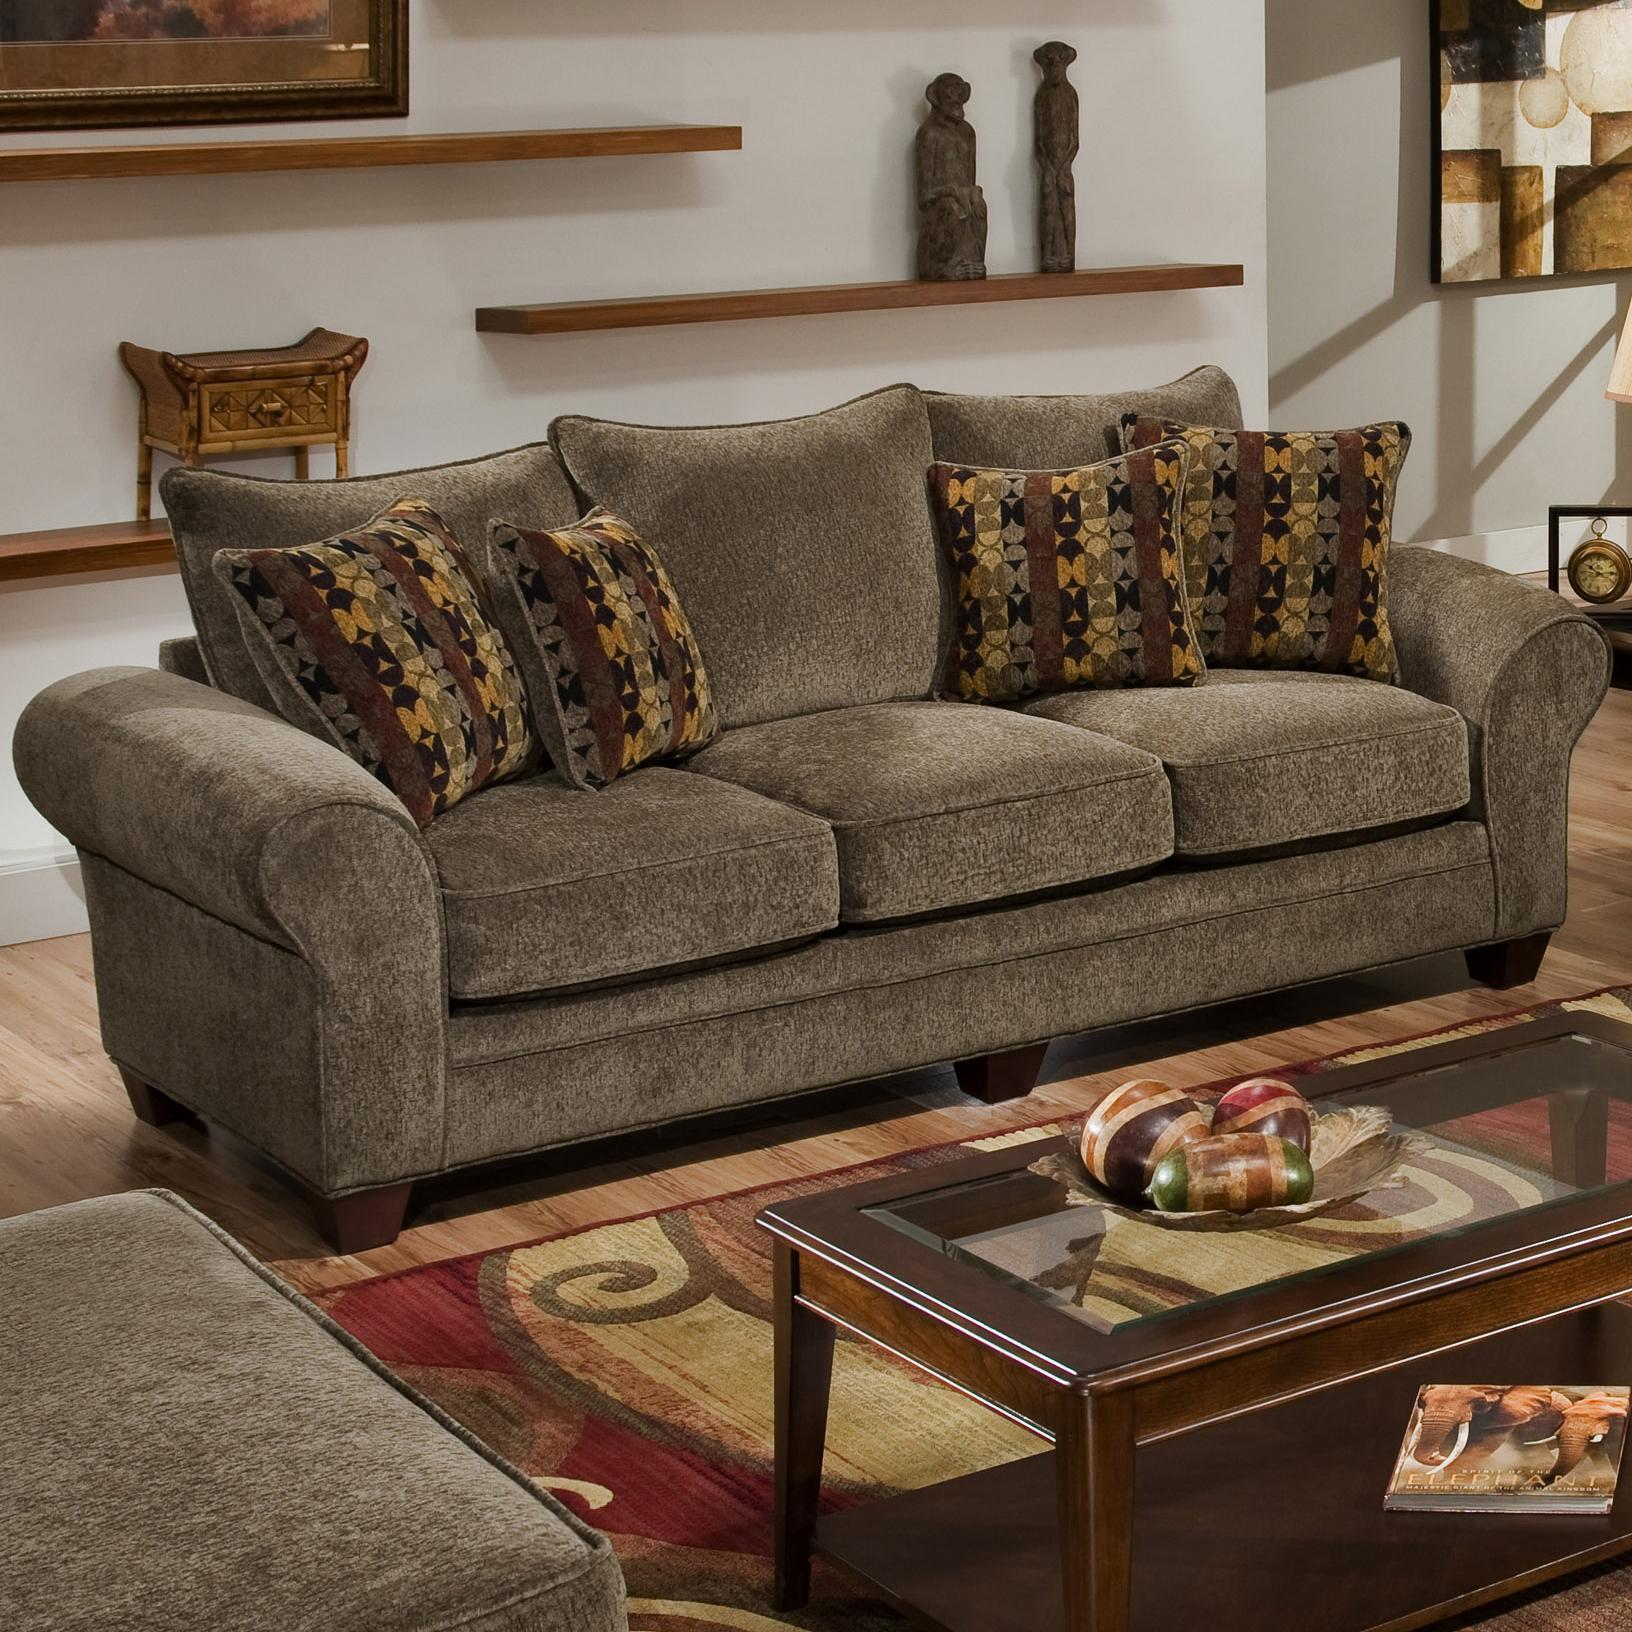 American Furniture 3700 Upholstered Stationary Sofa   Item Number: 3703 M